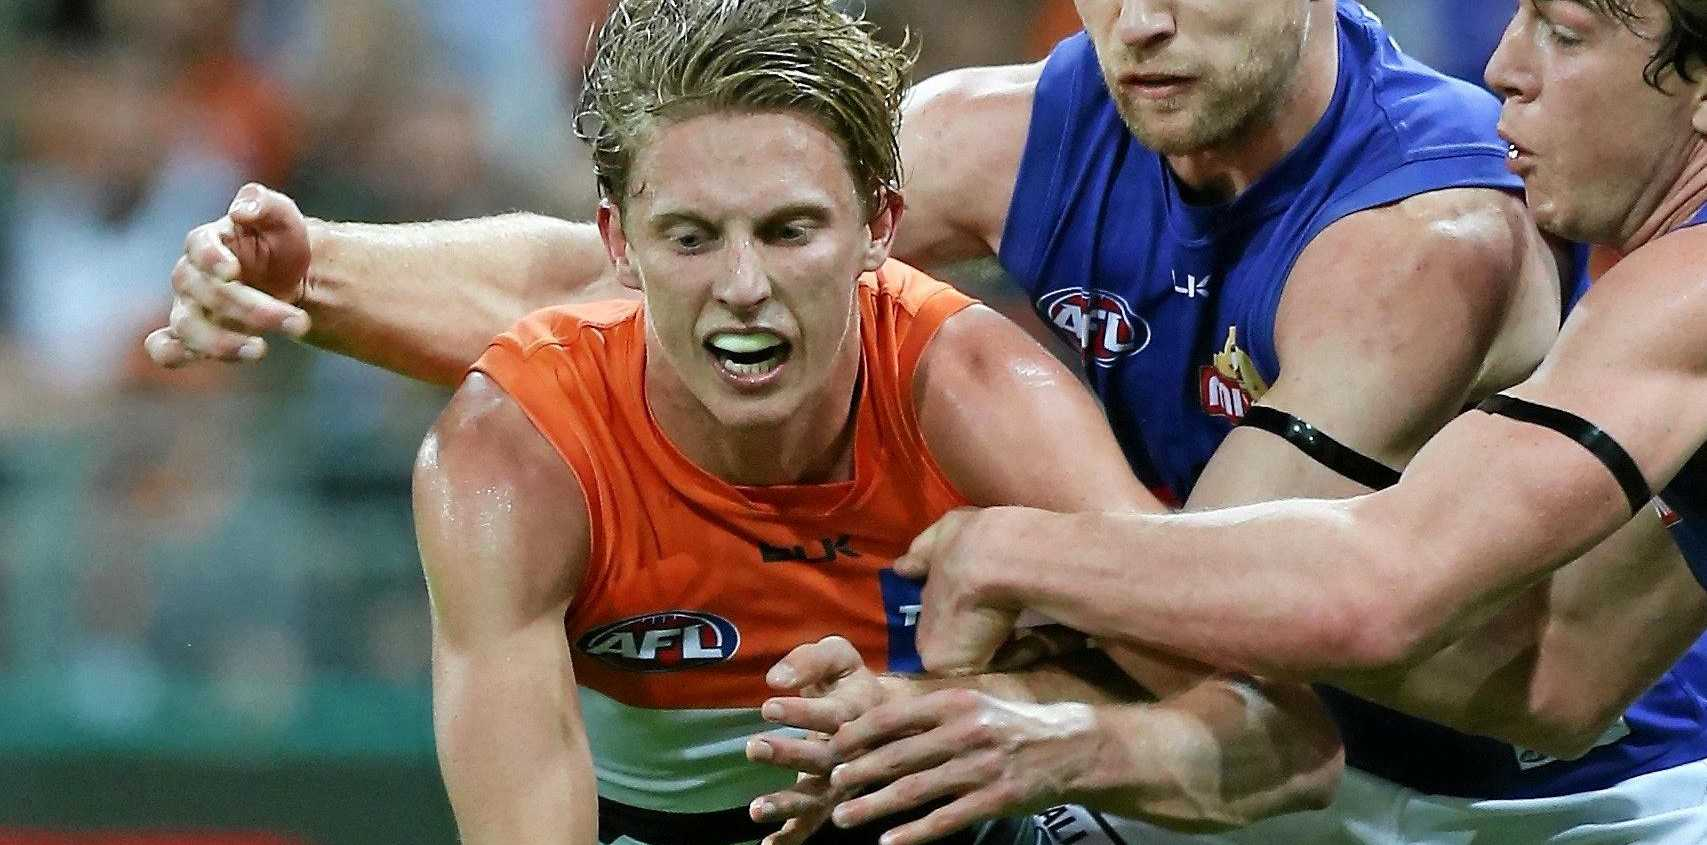 Lachie Whitfield of the Giants is facing a ban if charged with breaching the AFL's illicit drug code.